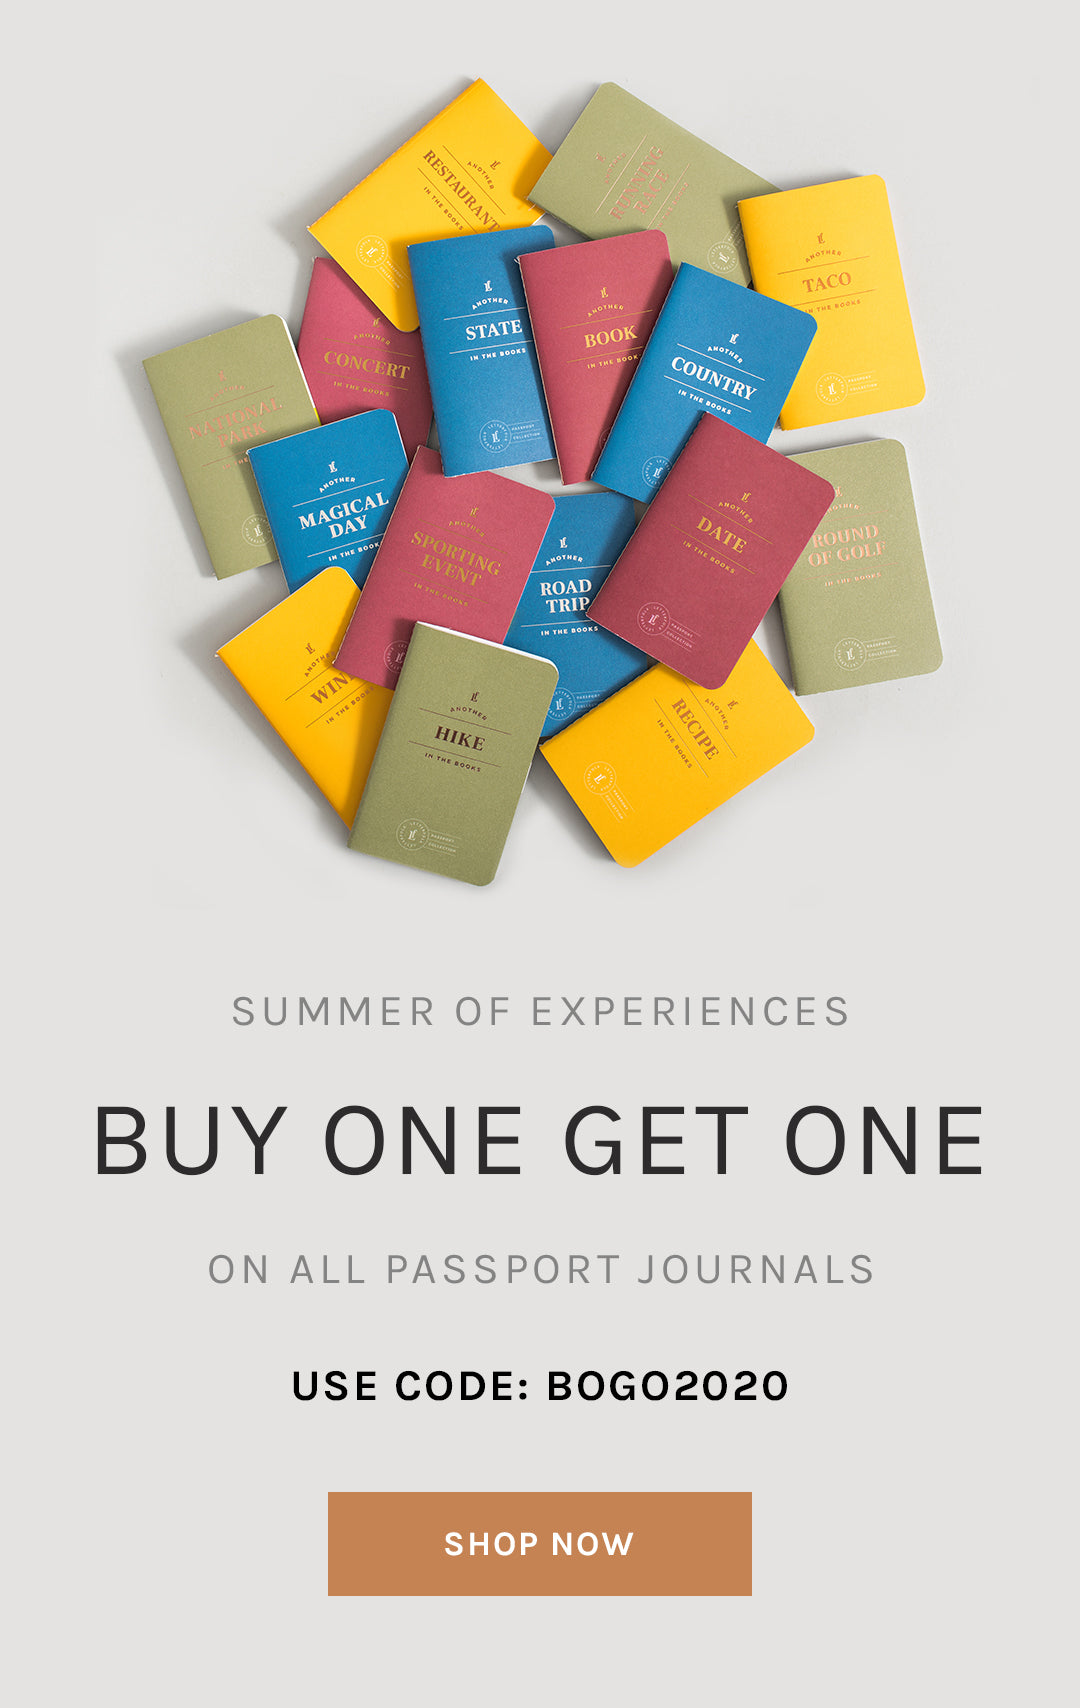 Buy One Get One on All Passport Journals